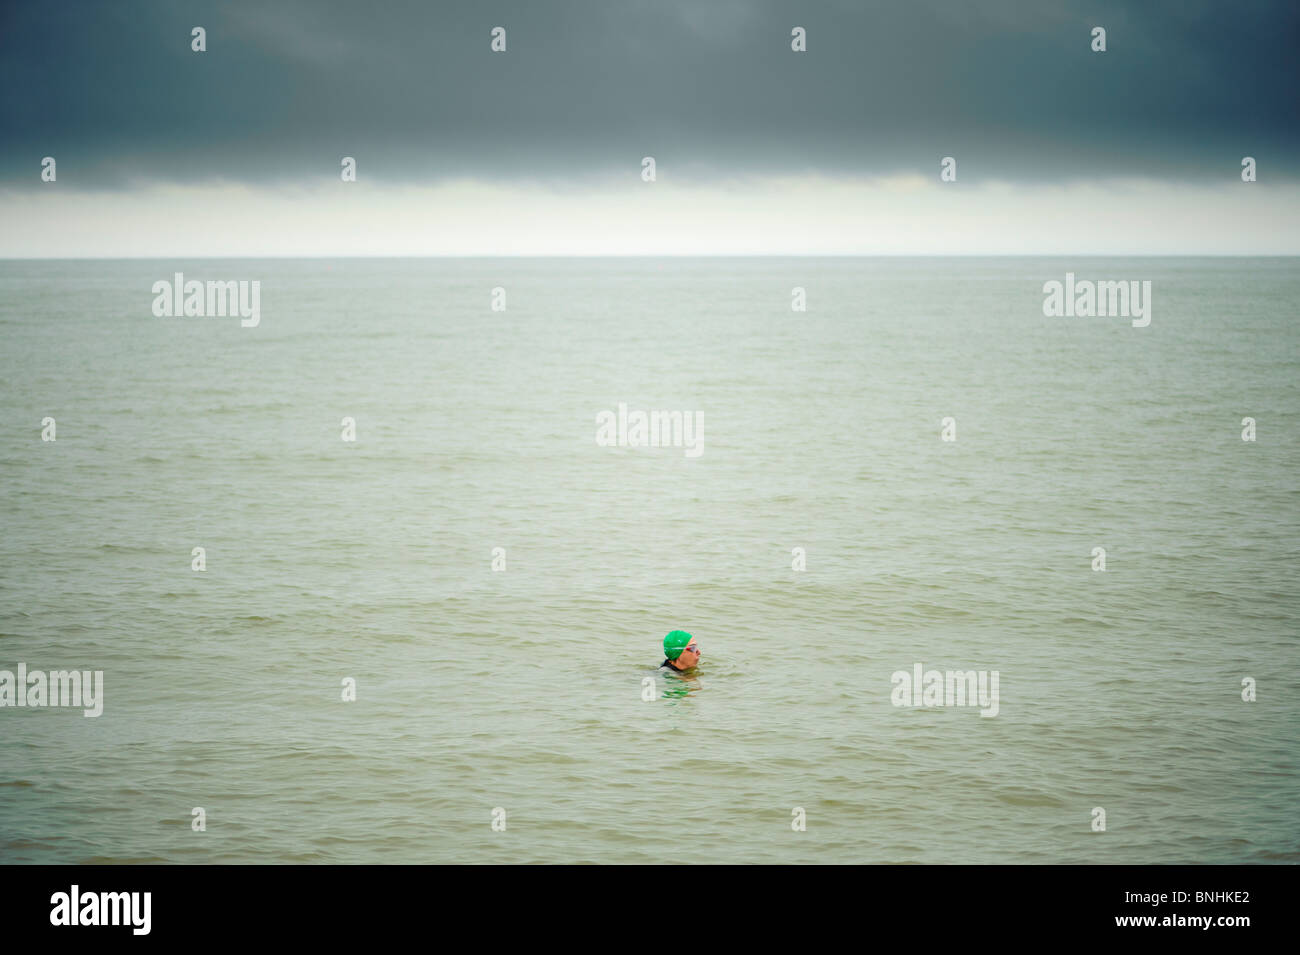 A person swimming alone in the sea in Aberystwyth on a grey overcast cloudy summer afternoon, july 2010, UK - Stock Image